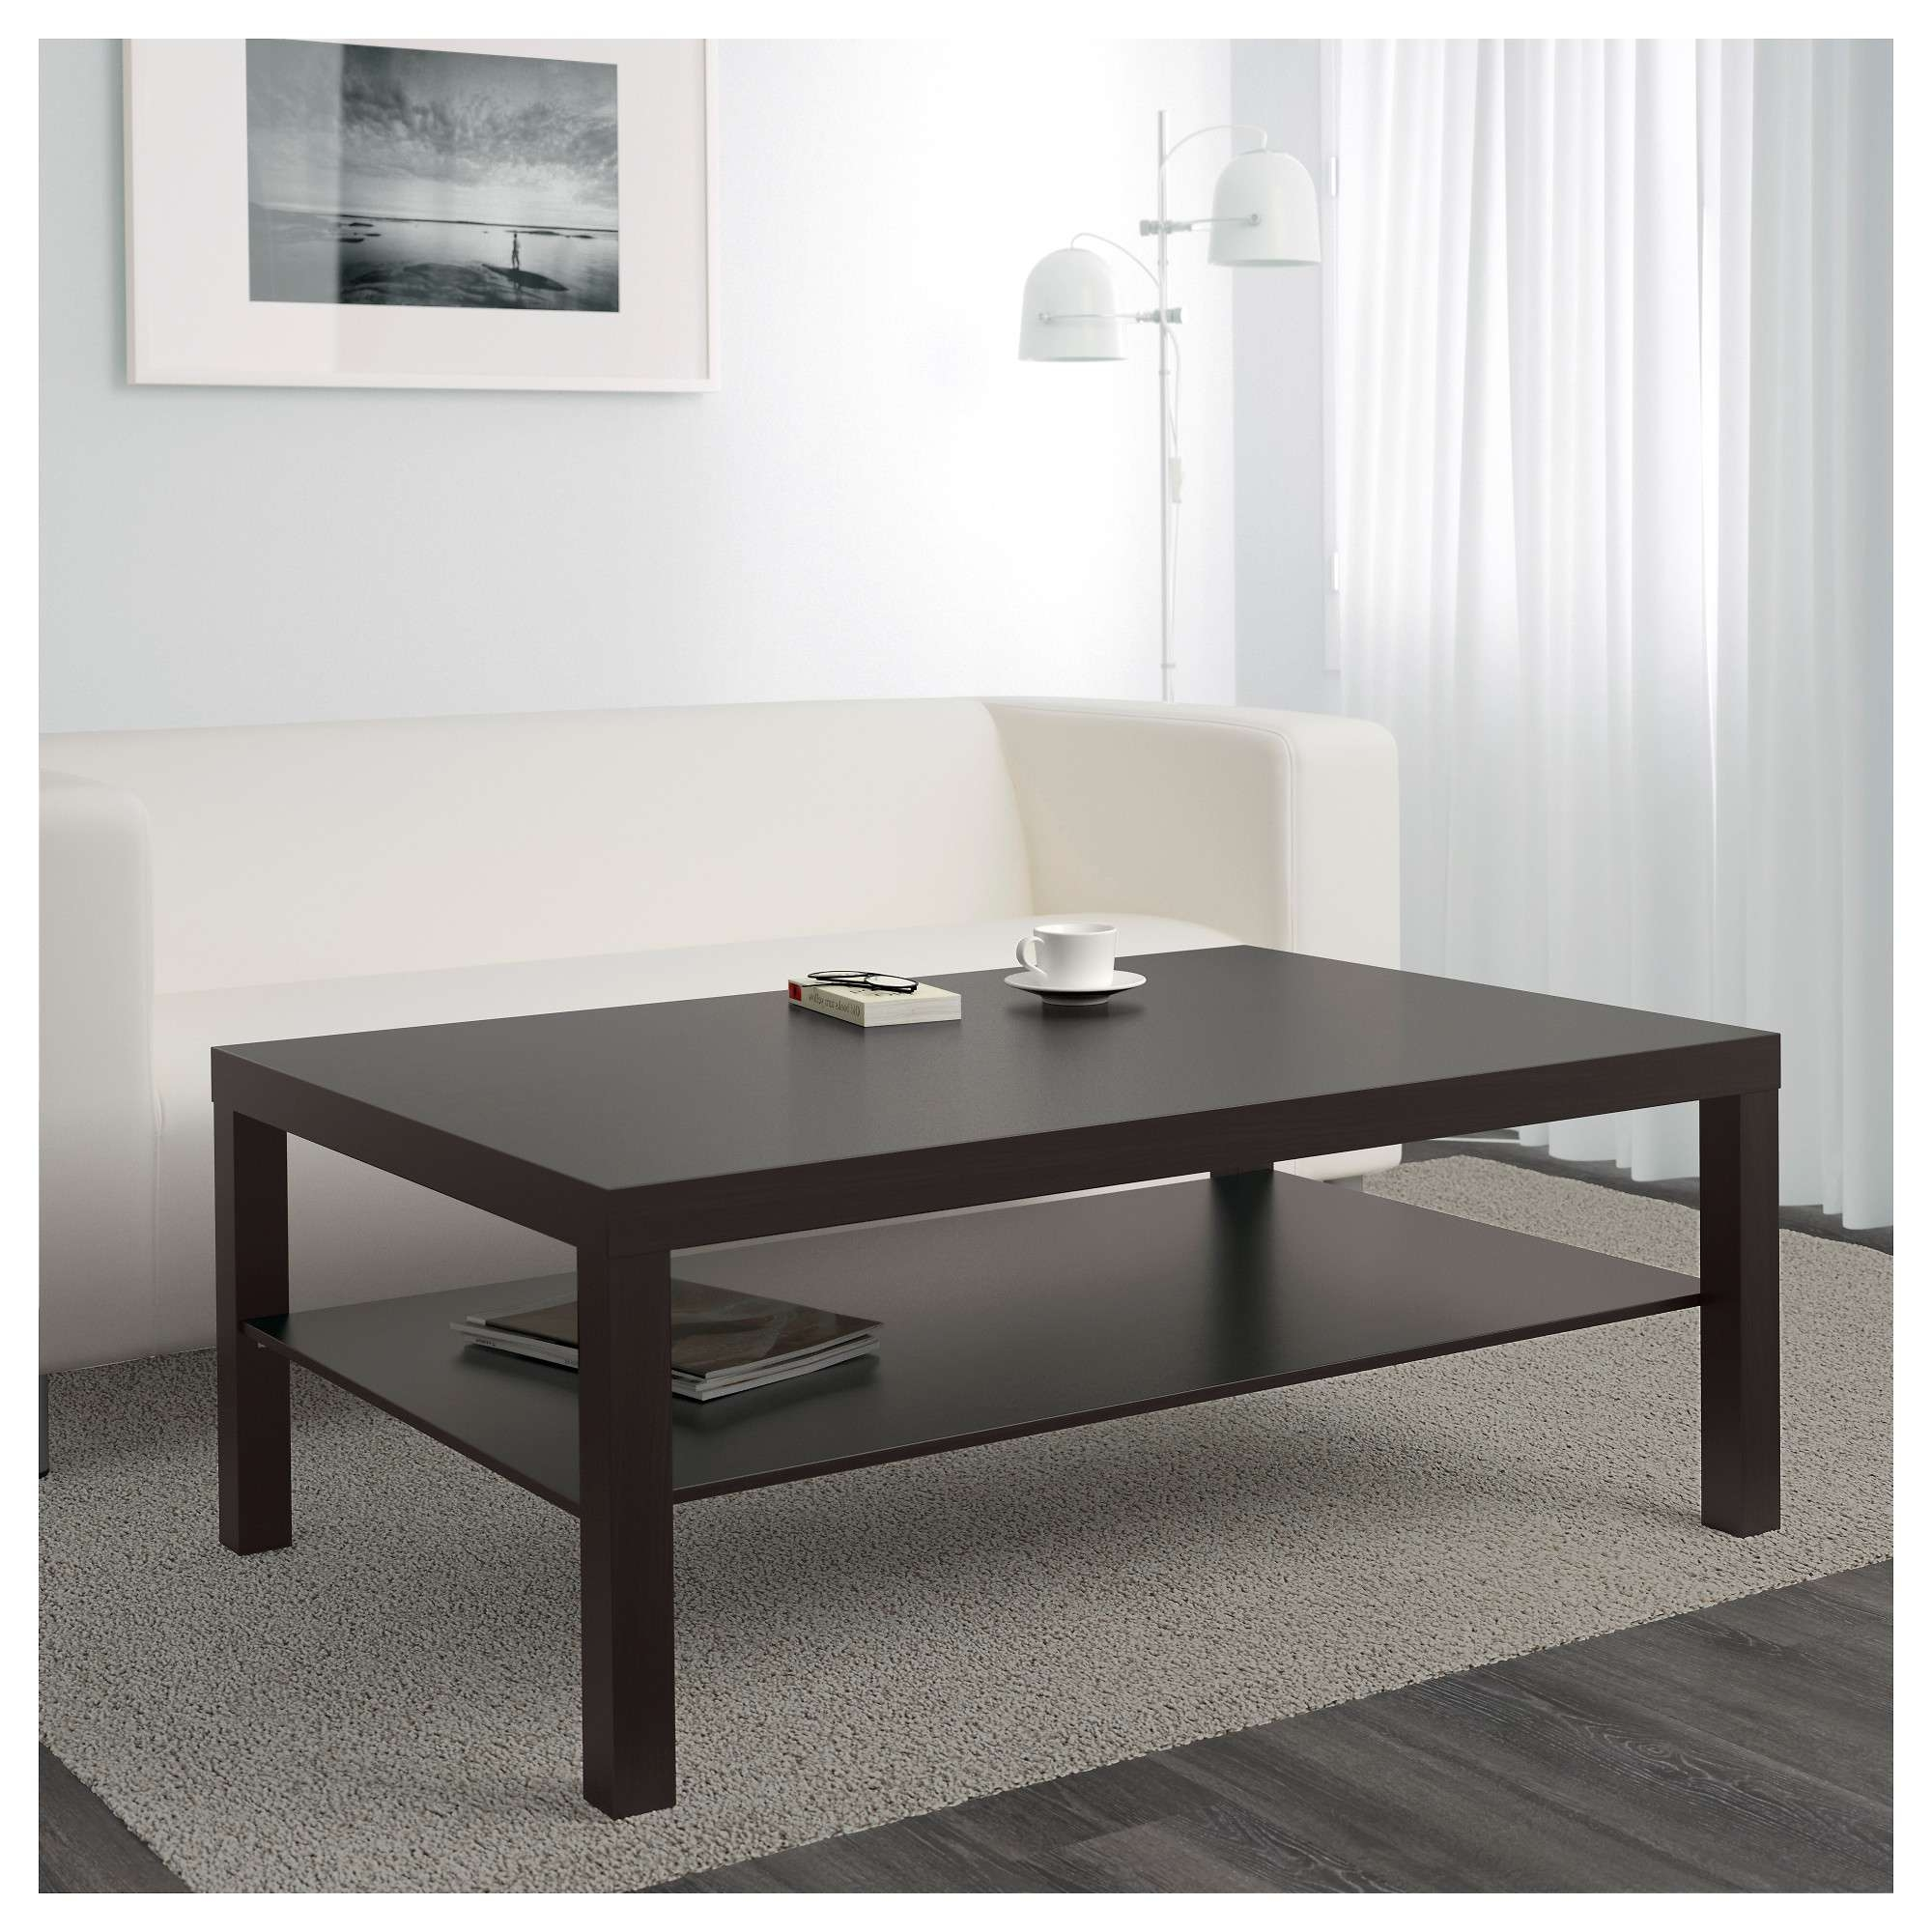 Most Recent Big Low Coffee Tables For Coffee Tables : Simple Big Low Coffee Table Living Room Table (View 19 of 20)